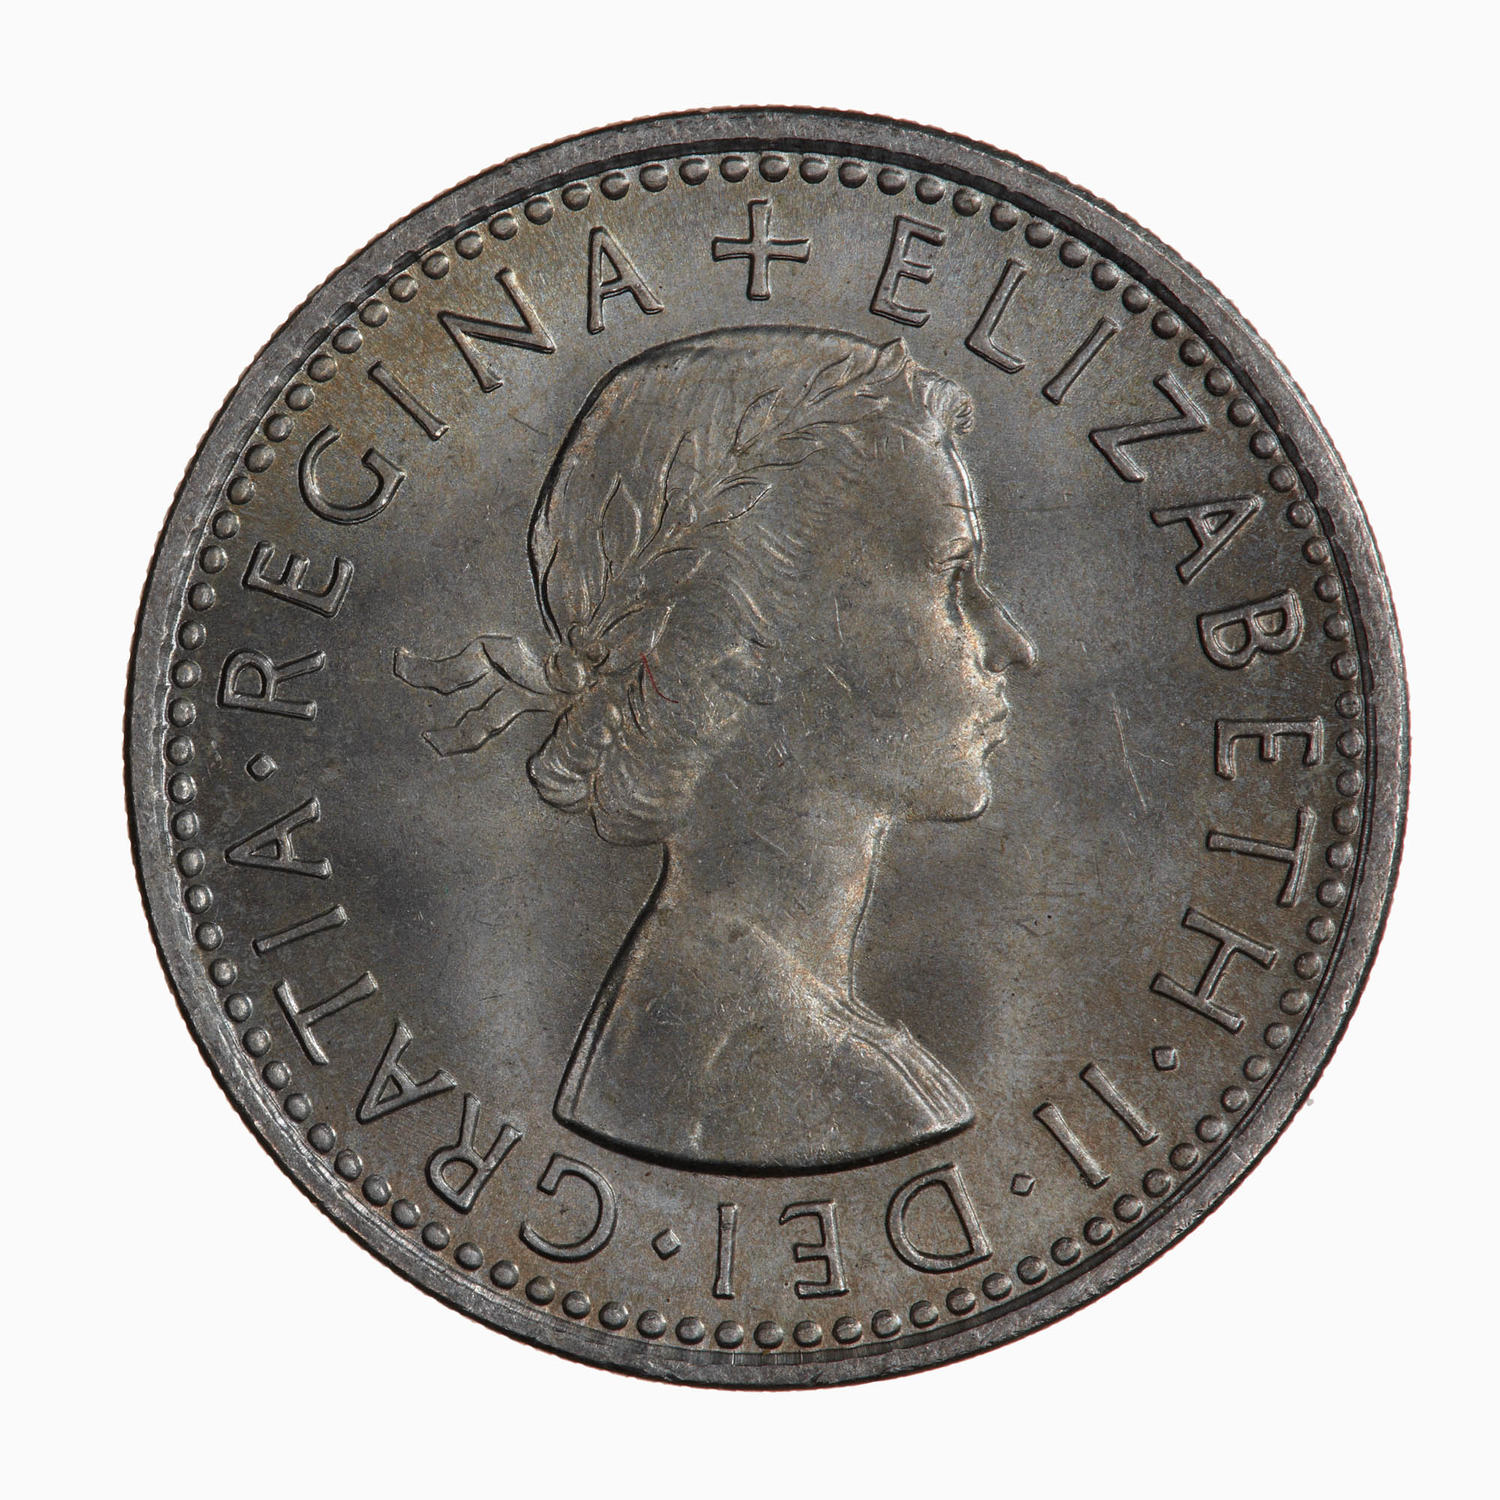 Sixpence: Photo Coin - Sixpence, Elizabeth II, Great Britain, 1966